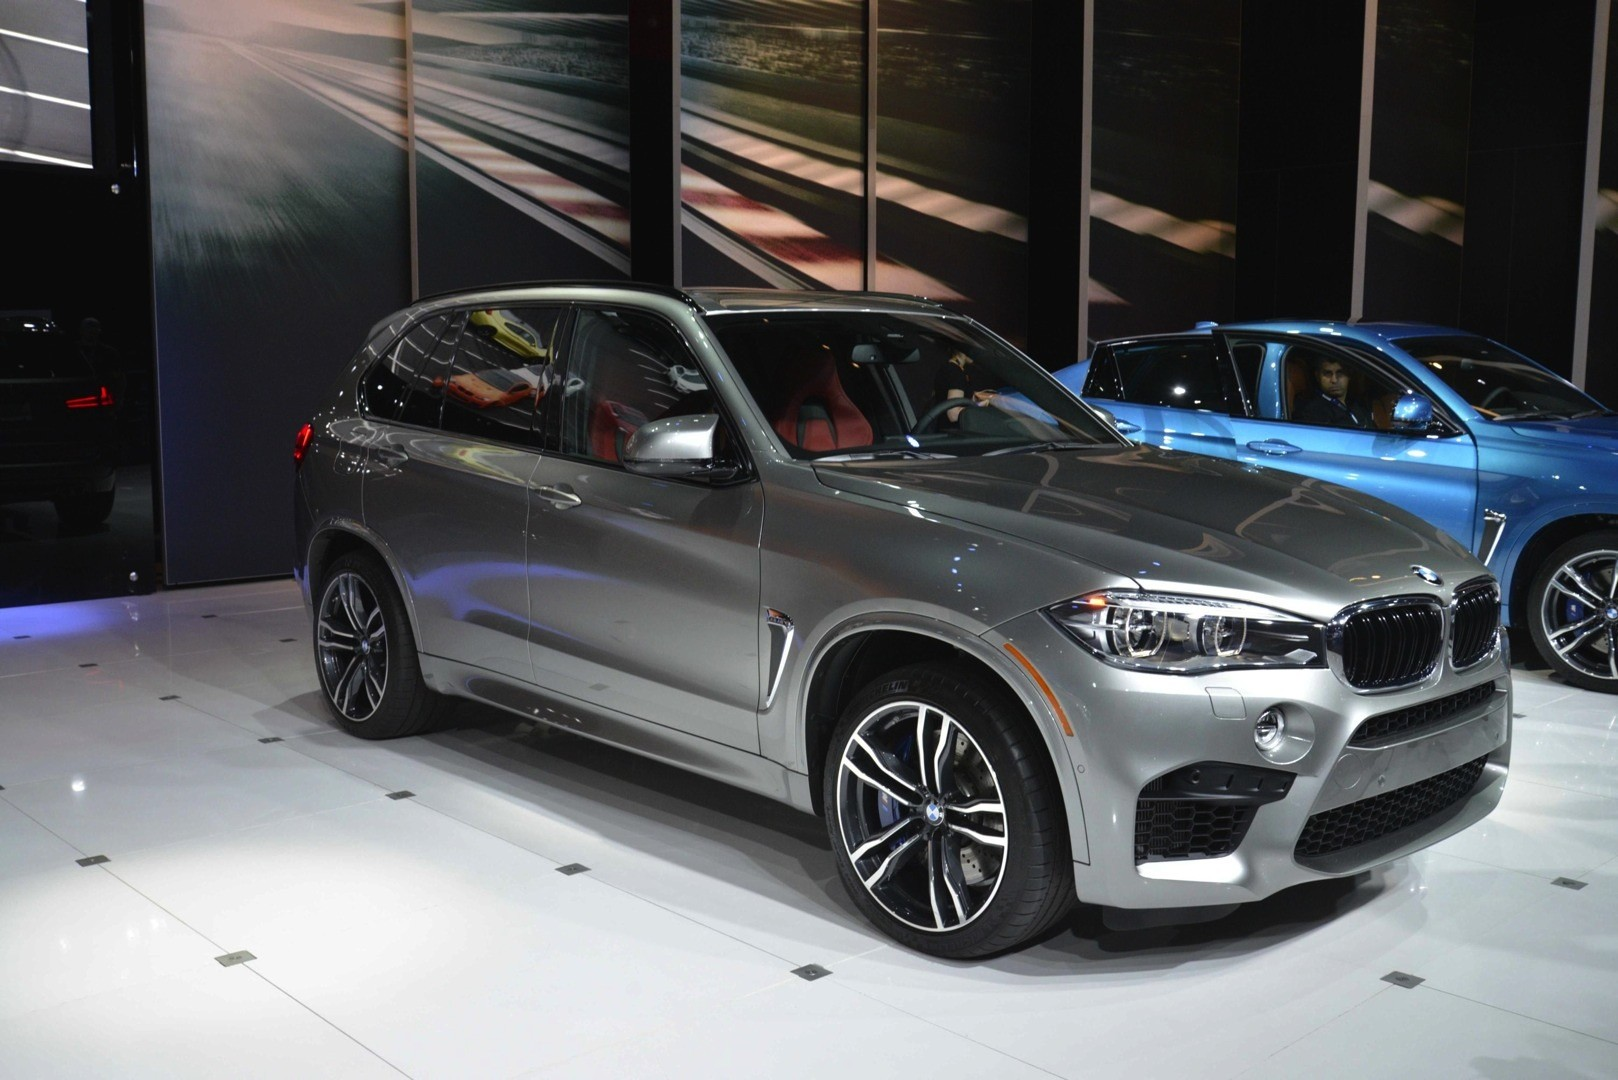 ... and X6 M Show Up in LA with New Colors [Live Photos] - autoevolution